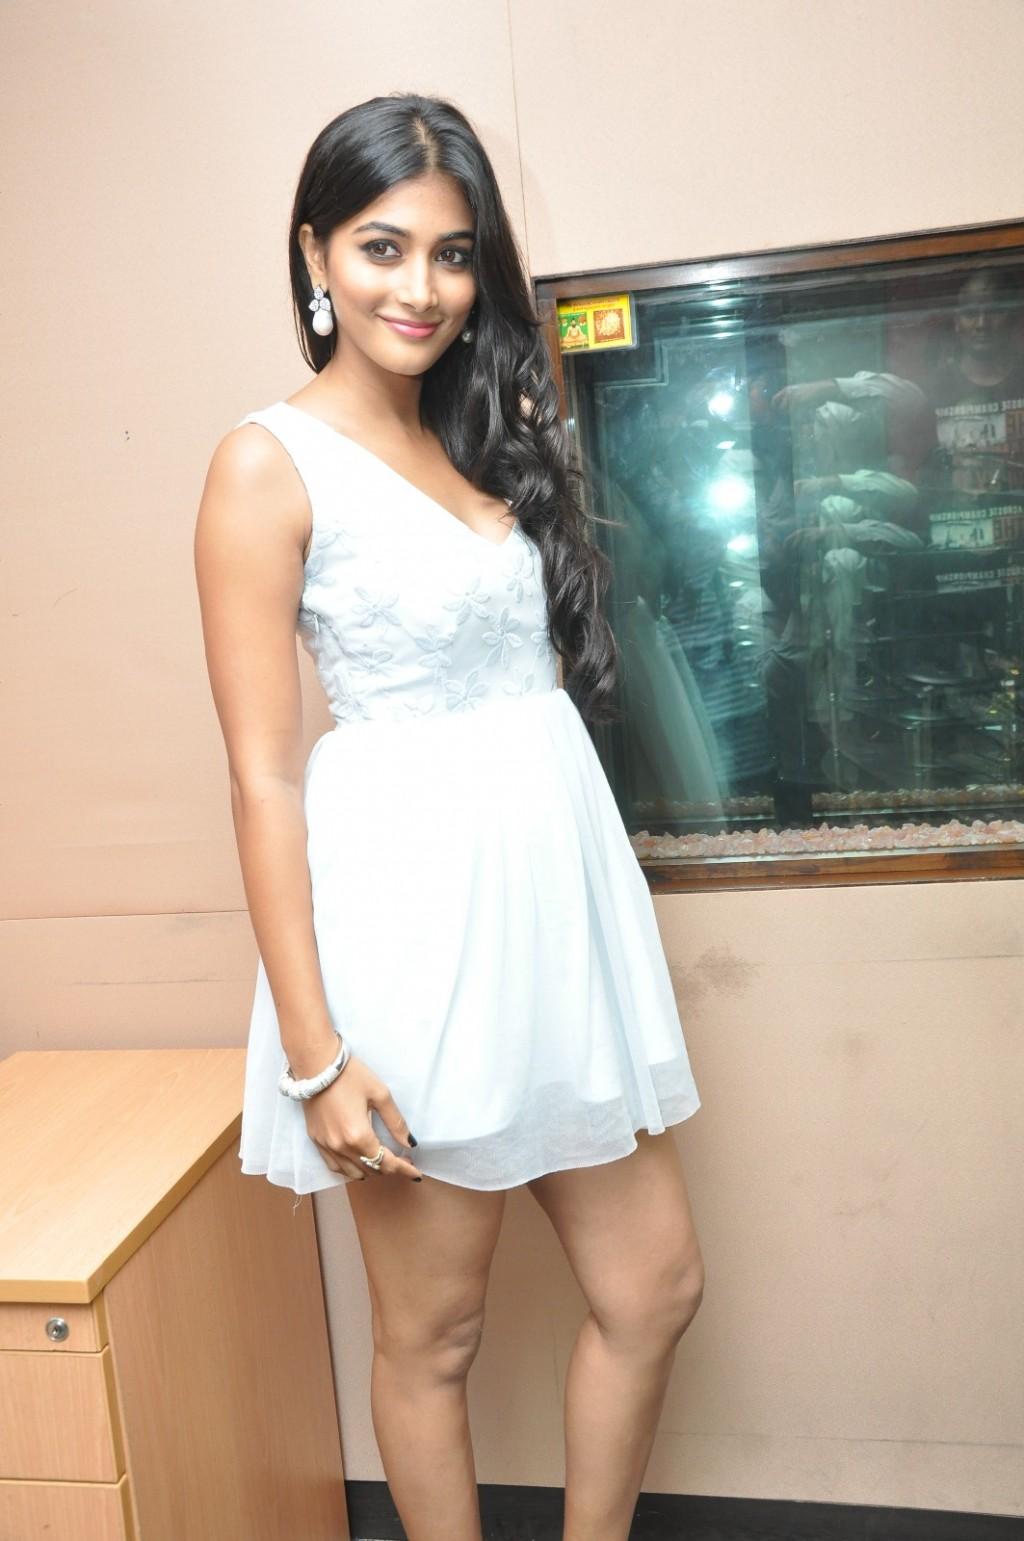 Beauty Of Legs : Actress Pooja Hegde Lures The Media With